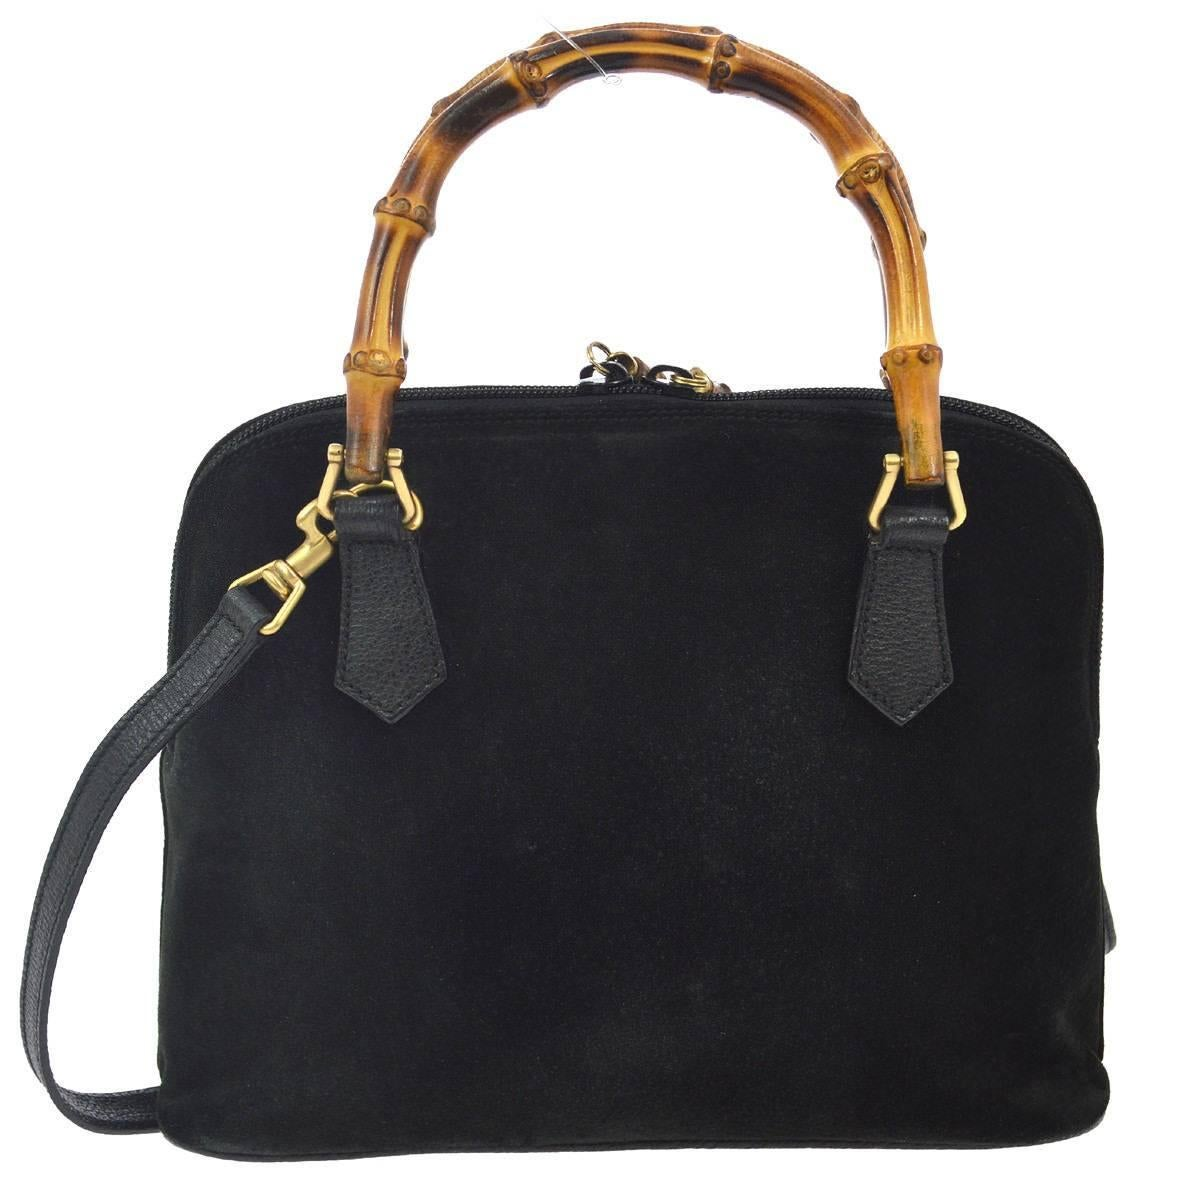 Gucci Black Suede Bamboo Party Top Handle Satchel Shoulder Bag I7Iau